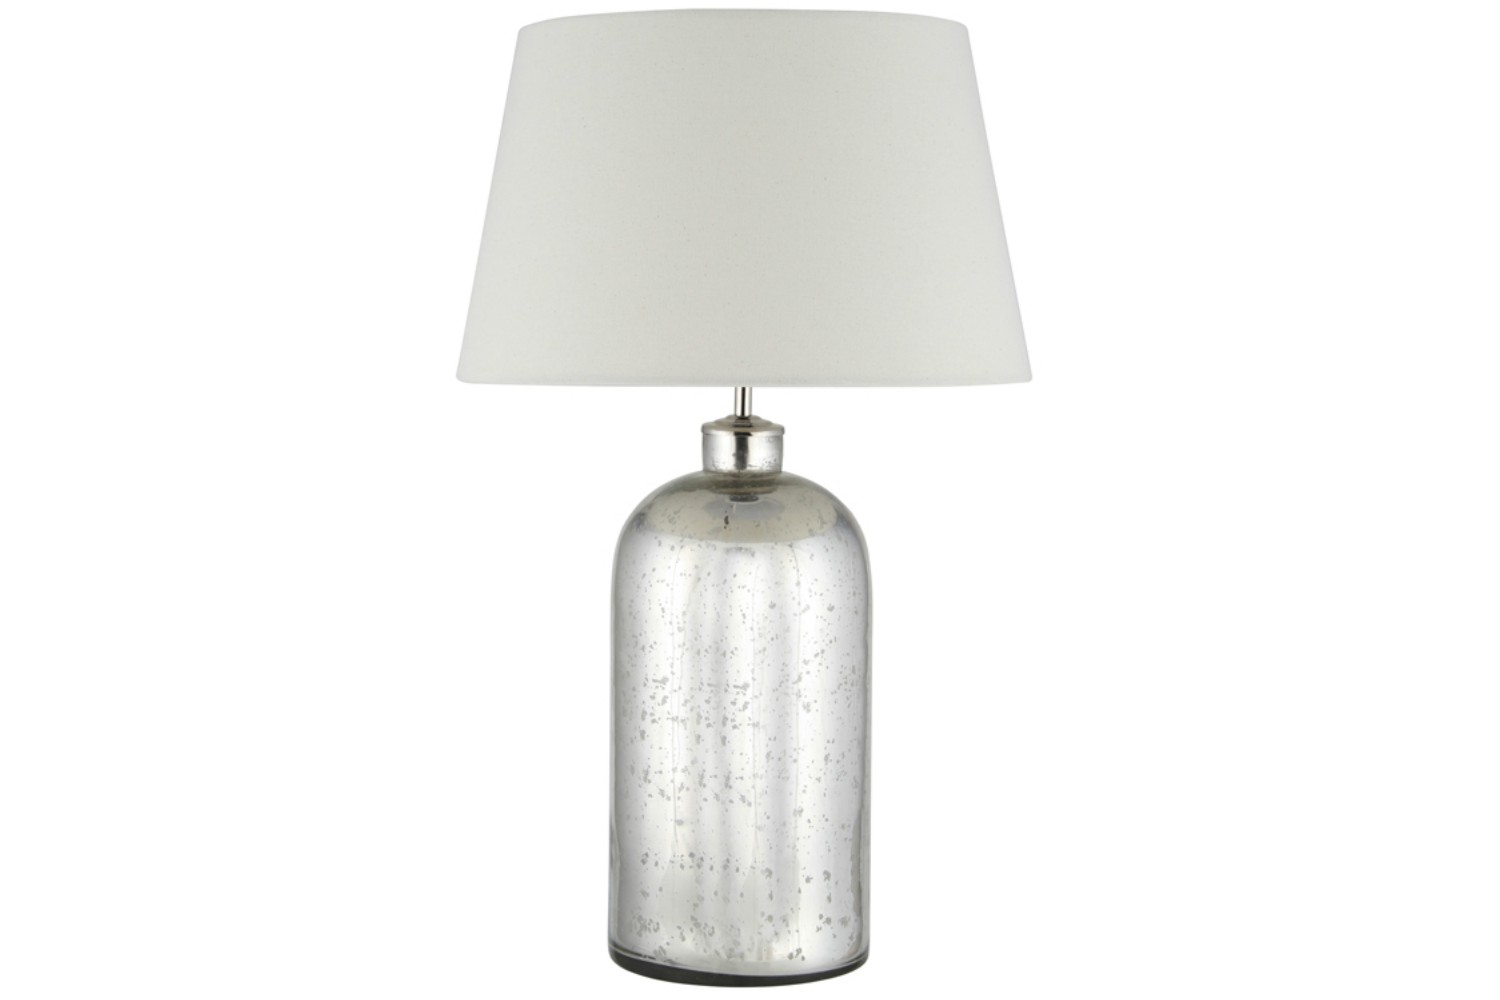 Glass Lamp Tables Ireland Mercury Glass Table Lamp Ireland